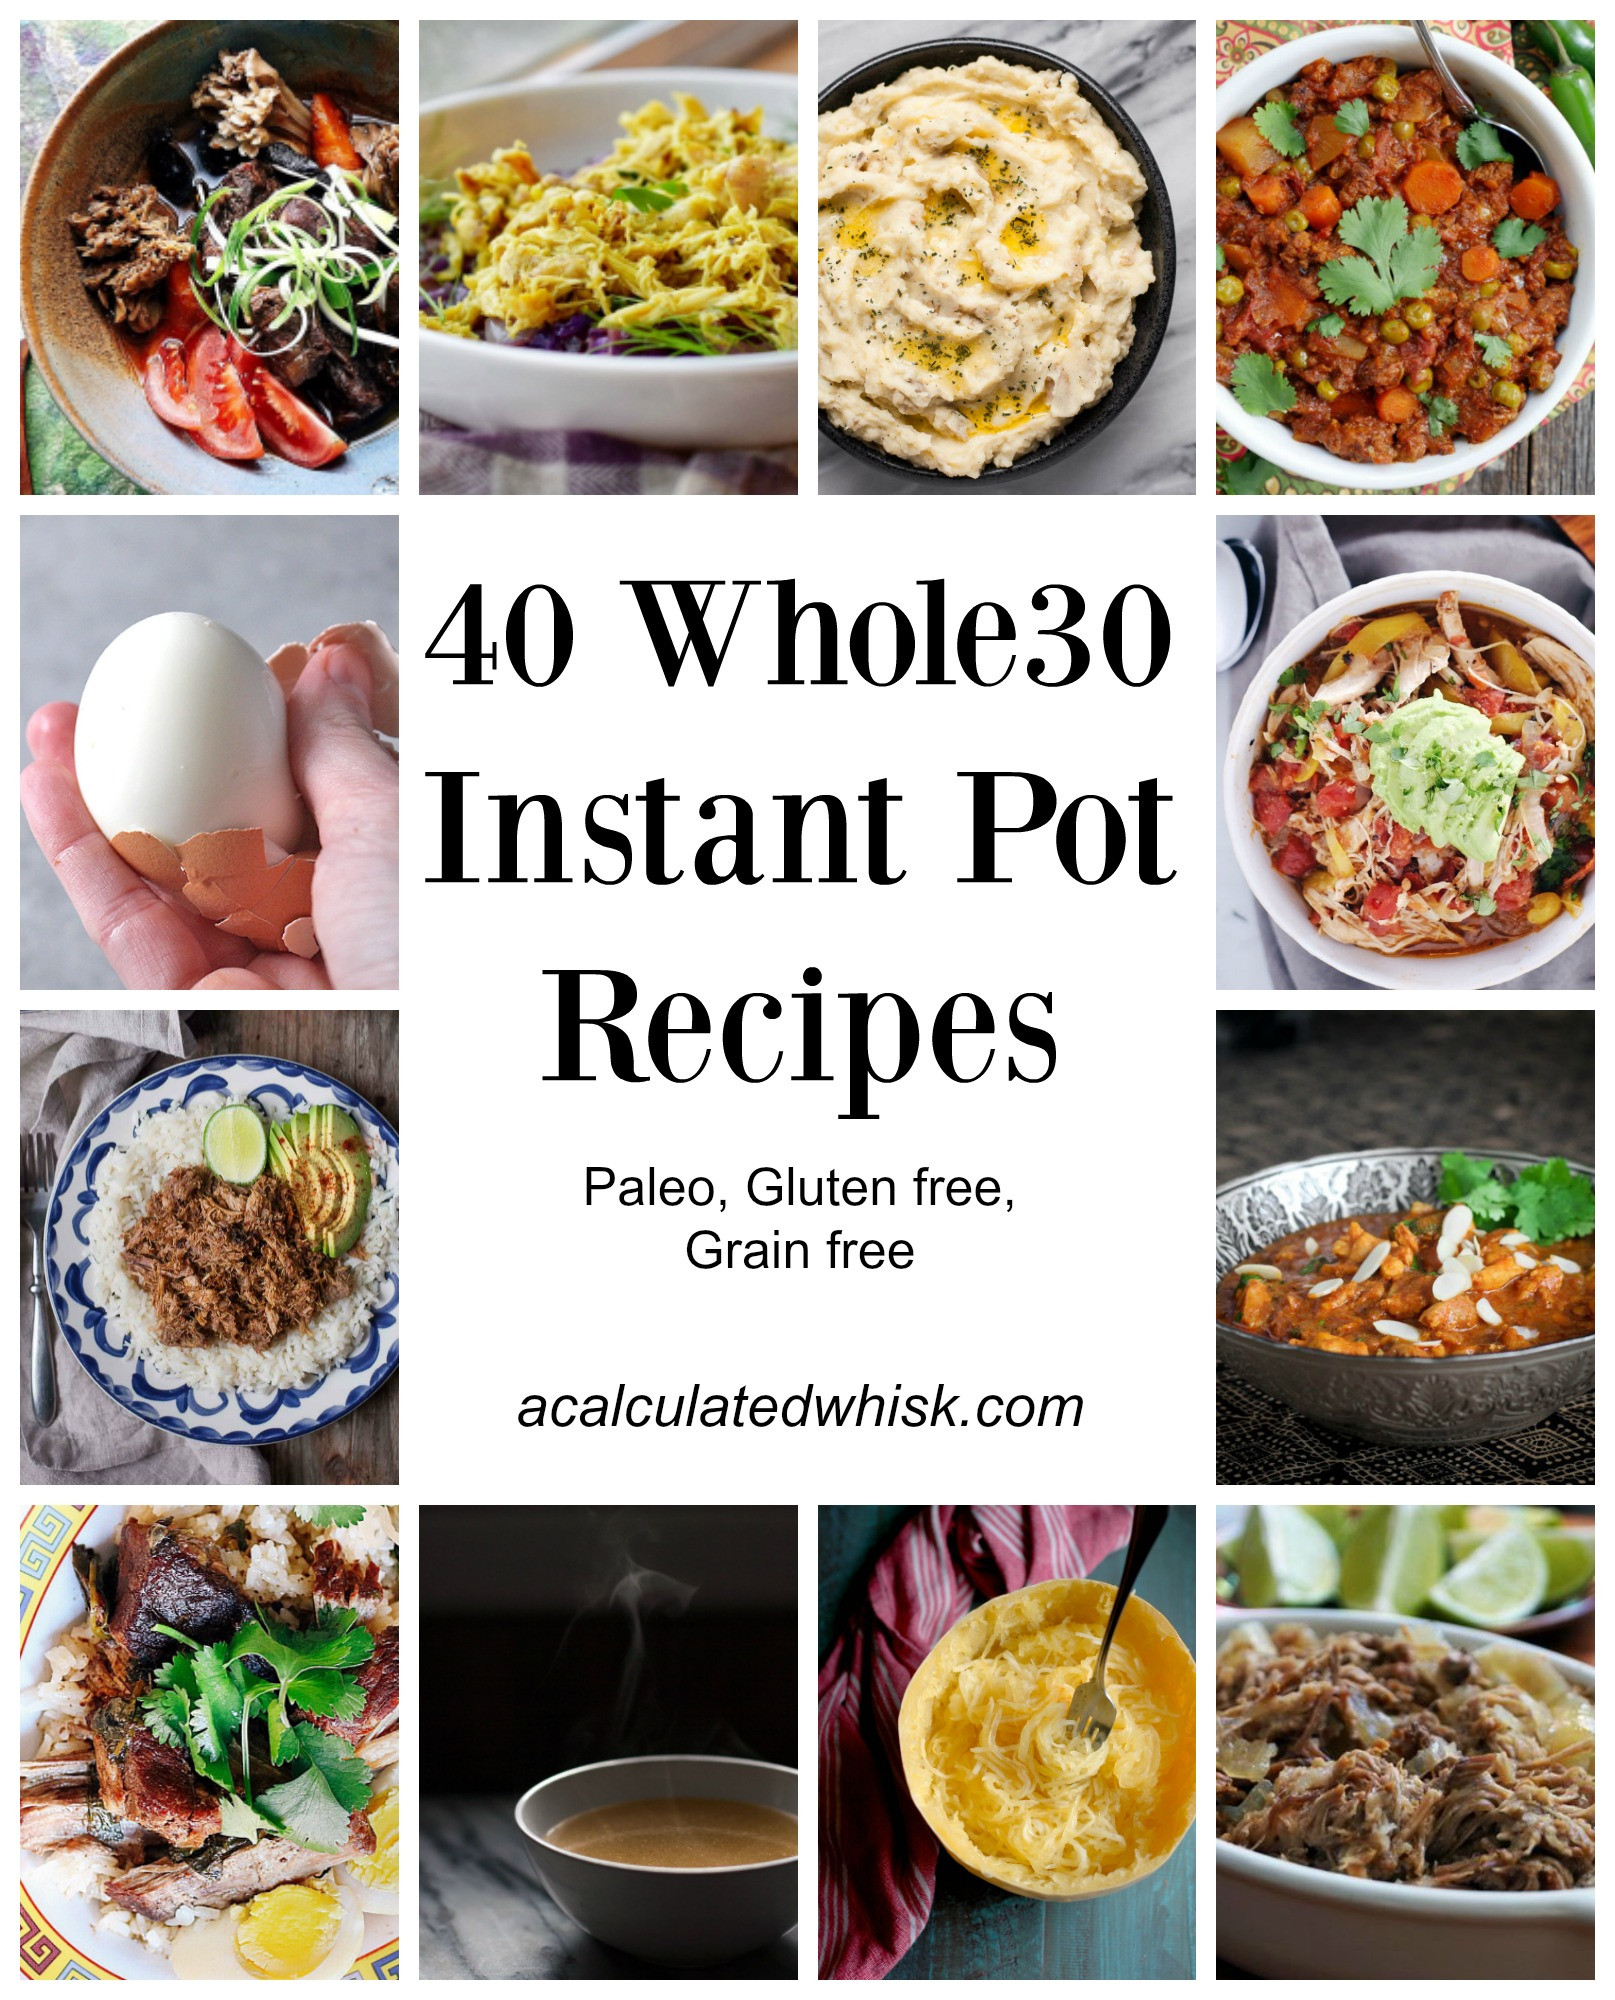 Instant Pot Paleo Recipes  40 Whole30 Instant Pot Recipes A Calculated Whisk